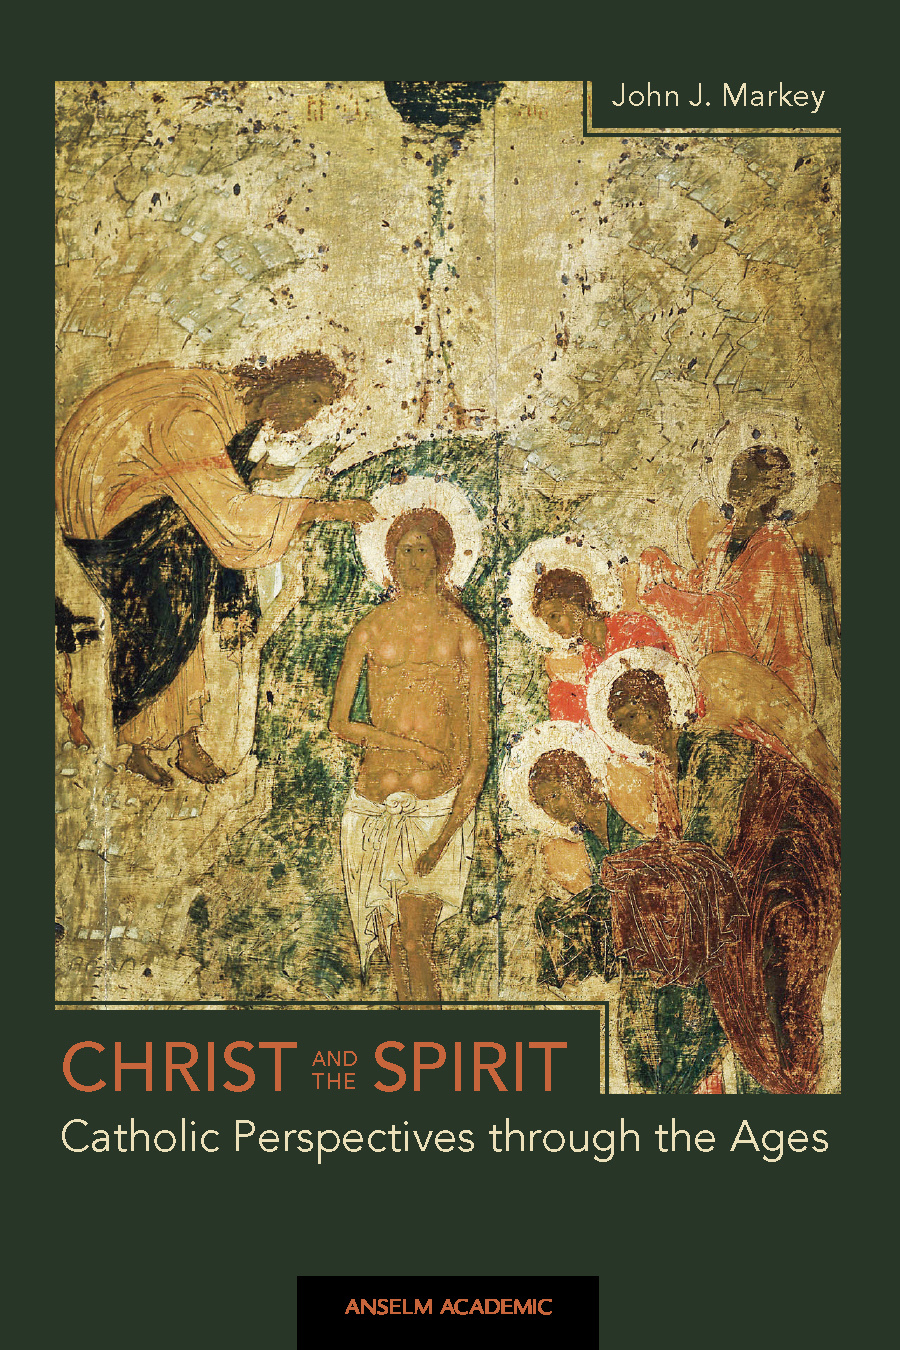 Christ and the Spirit: Catholic Perspectives through the Ages